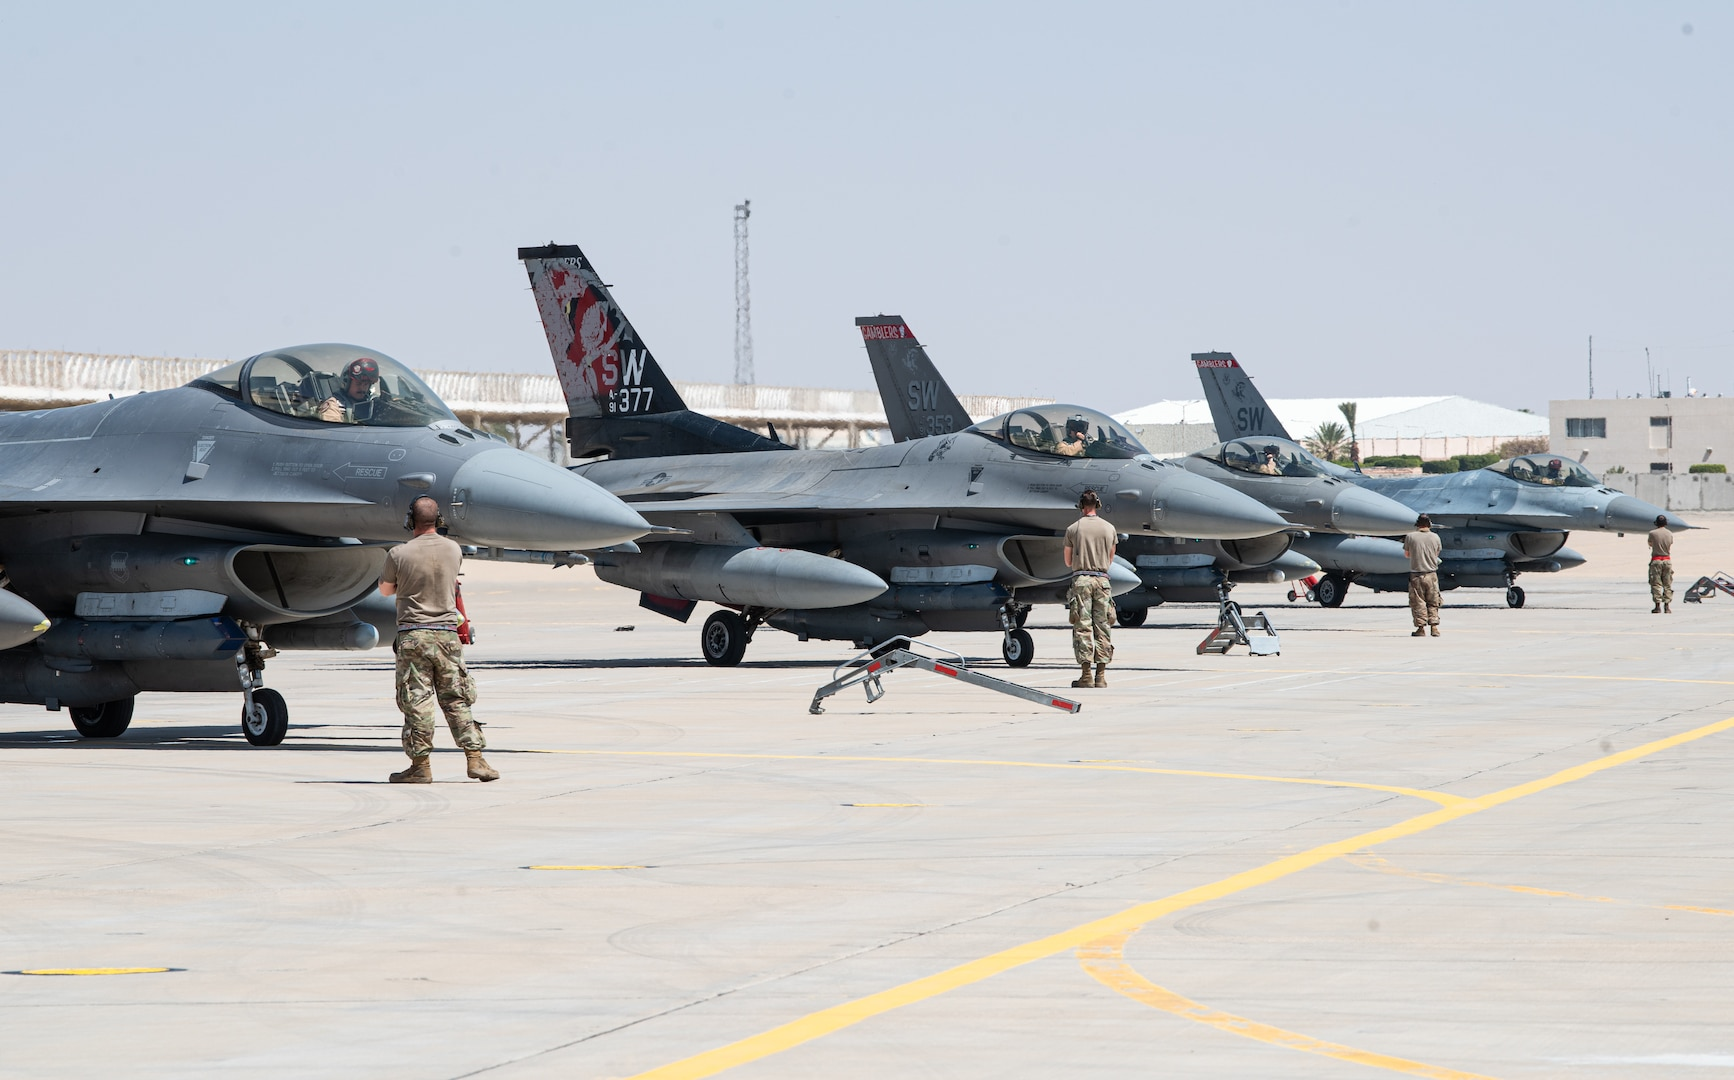 Crew chiefs from the 77th Fighter Generation Squadron and 77th Expeditionary Fighter Squadron pilots prepare for flight during an Agile Combat Employment capstone event March 5, 2021, at an airbase in the Kingdom of Saudi Arabia.